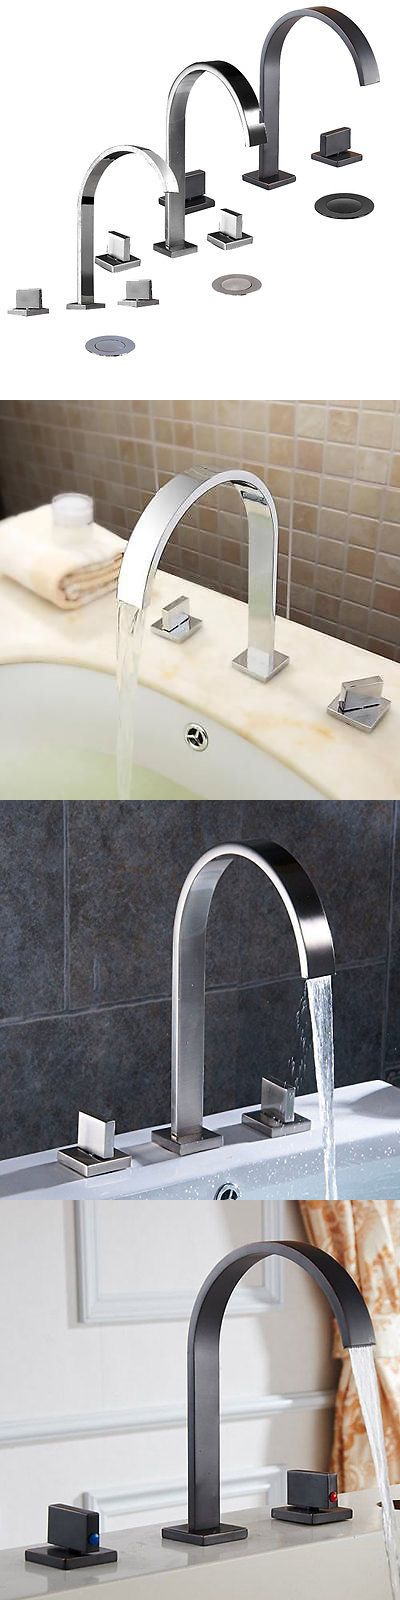 Faucets 42024: 8 Bathroom Faucet Widespread Chrome Brushed Nickel Orb Three Holes Two Handle -> BUY IT NOW ONLY: $59.99 on eBay!